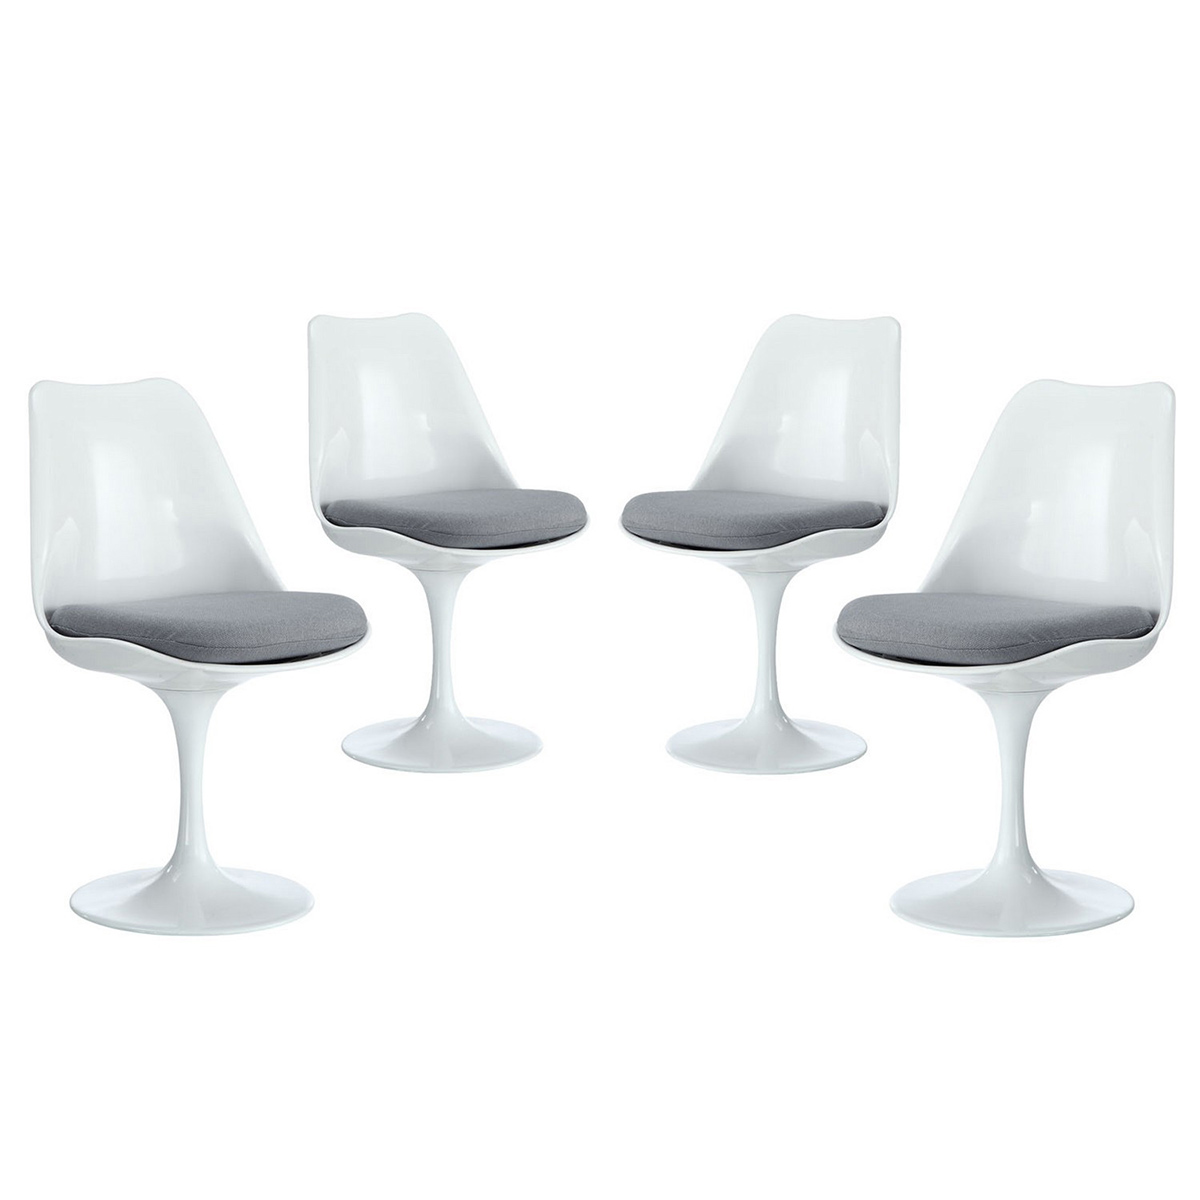 Modway Lippa Dining Side Chair Fabric Set of 4 - Gray